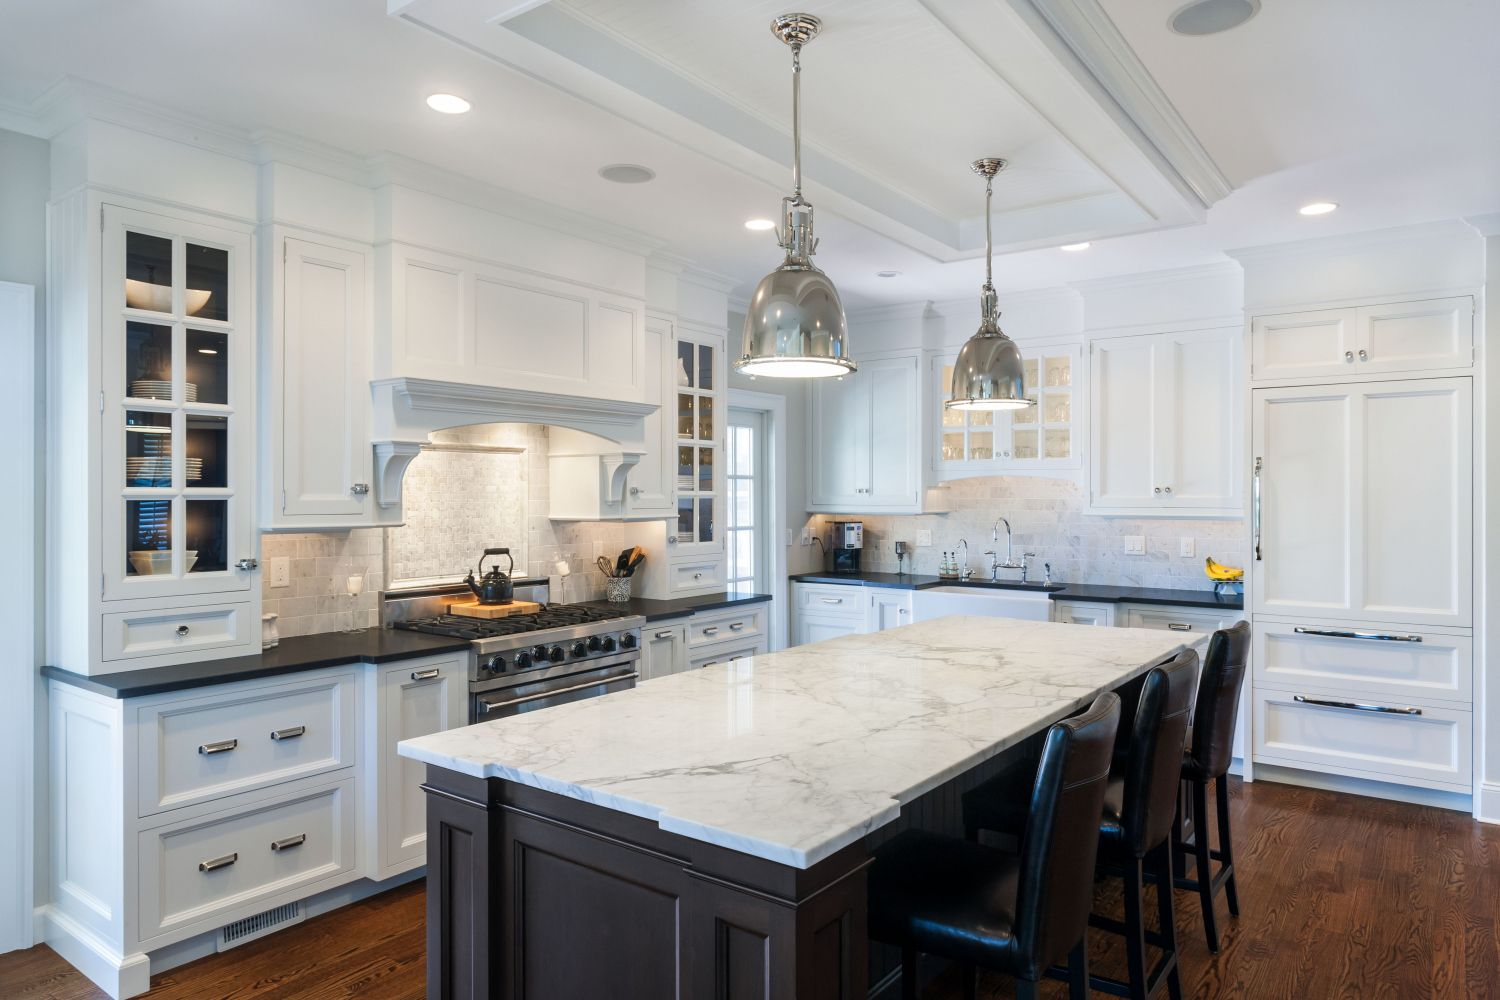 Kitchen island with Granite Countertop - Cabinet Ideas for Kitchens ...